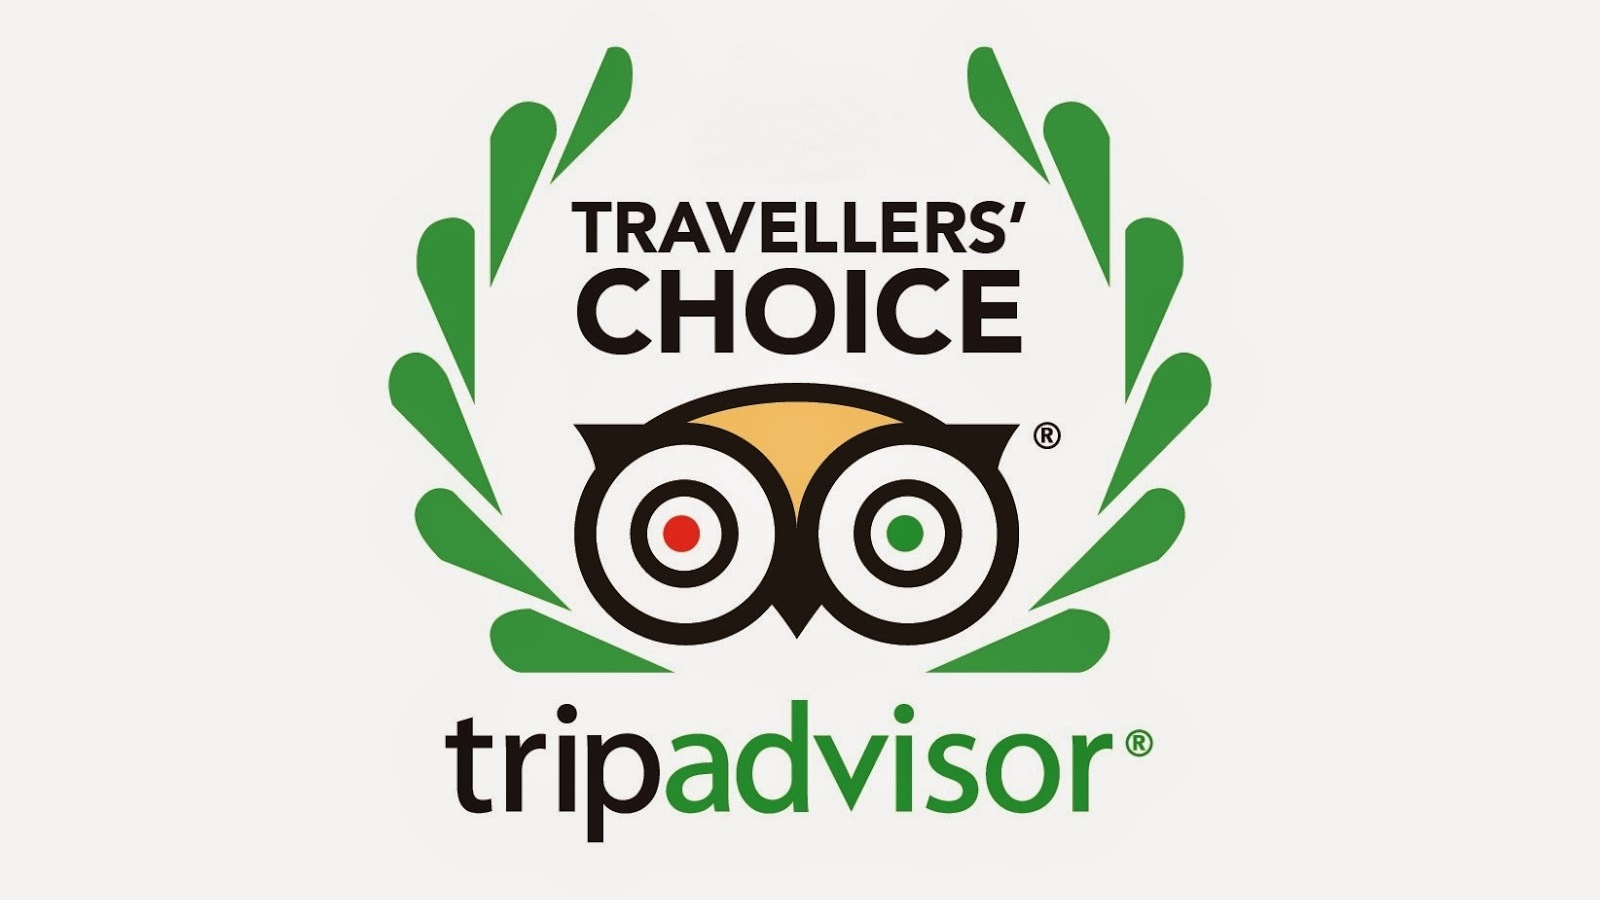 TripAdvisor Travellers' Choice Award